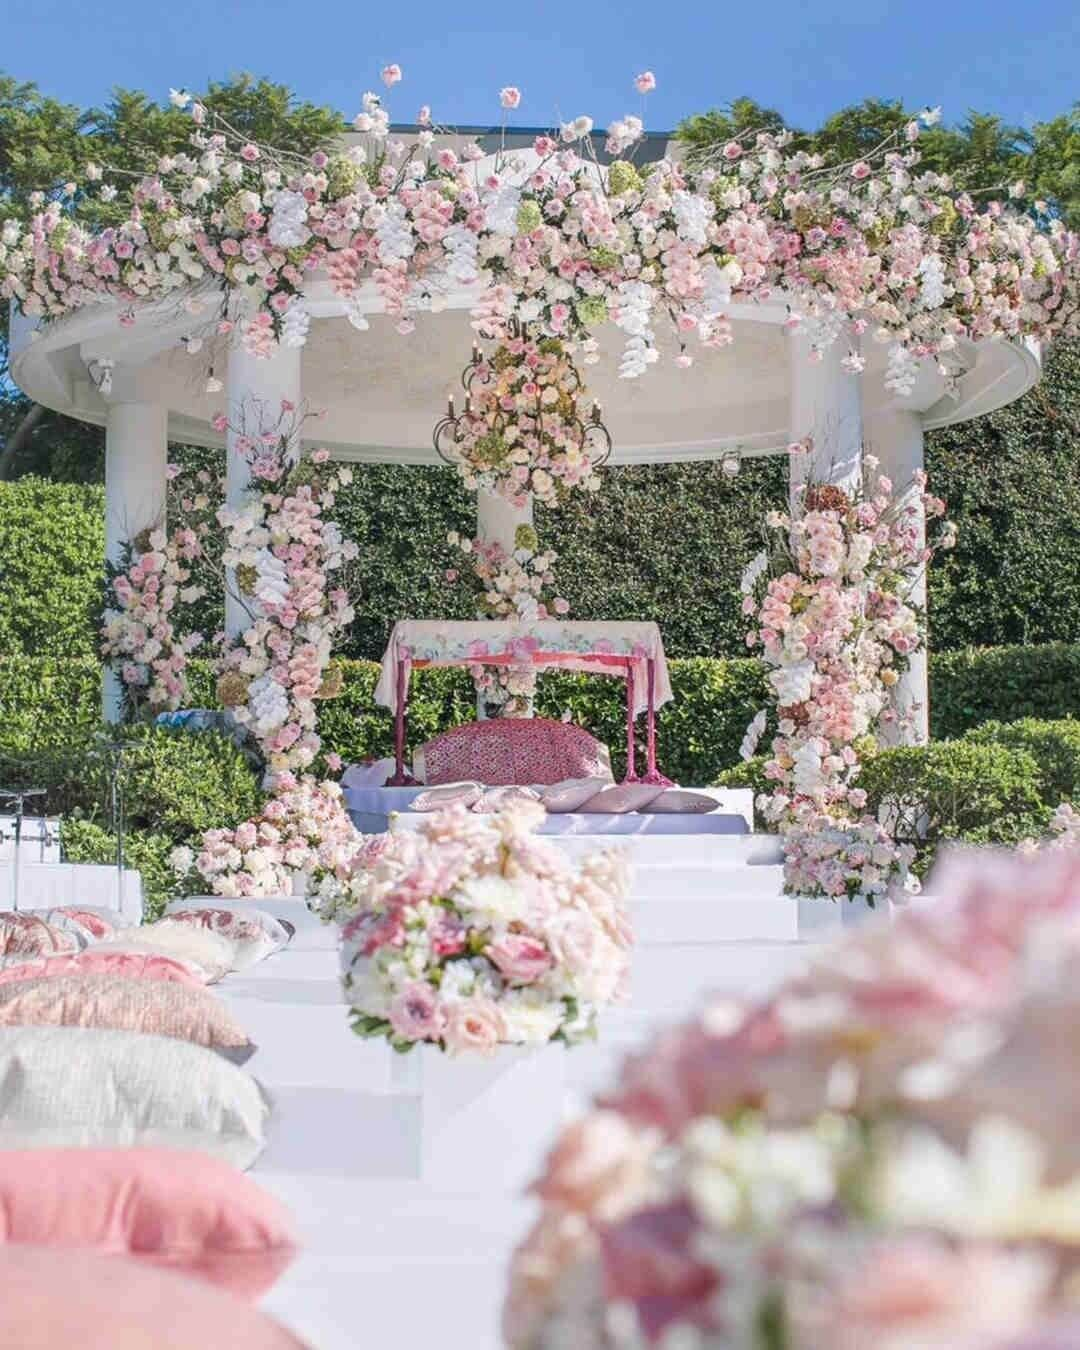 How To Plan For An Outdoor Wedding Decorations Like A Pro In 2020 Spring Wedding Decorations Wedding Aisle Decorations Outdoor Wedding Decorations,Front New Dream House Home Design